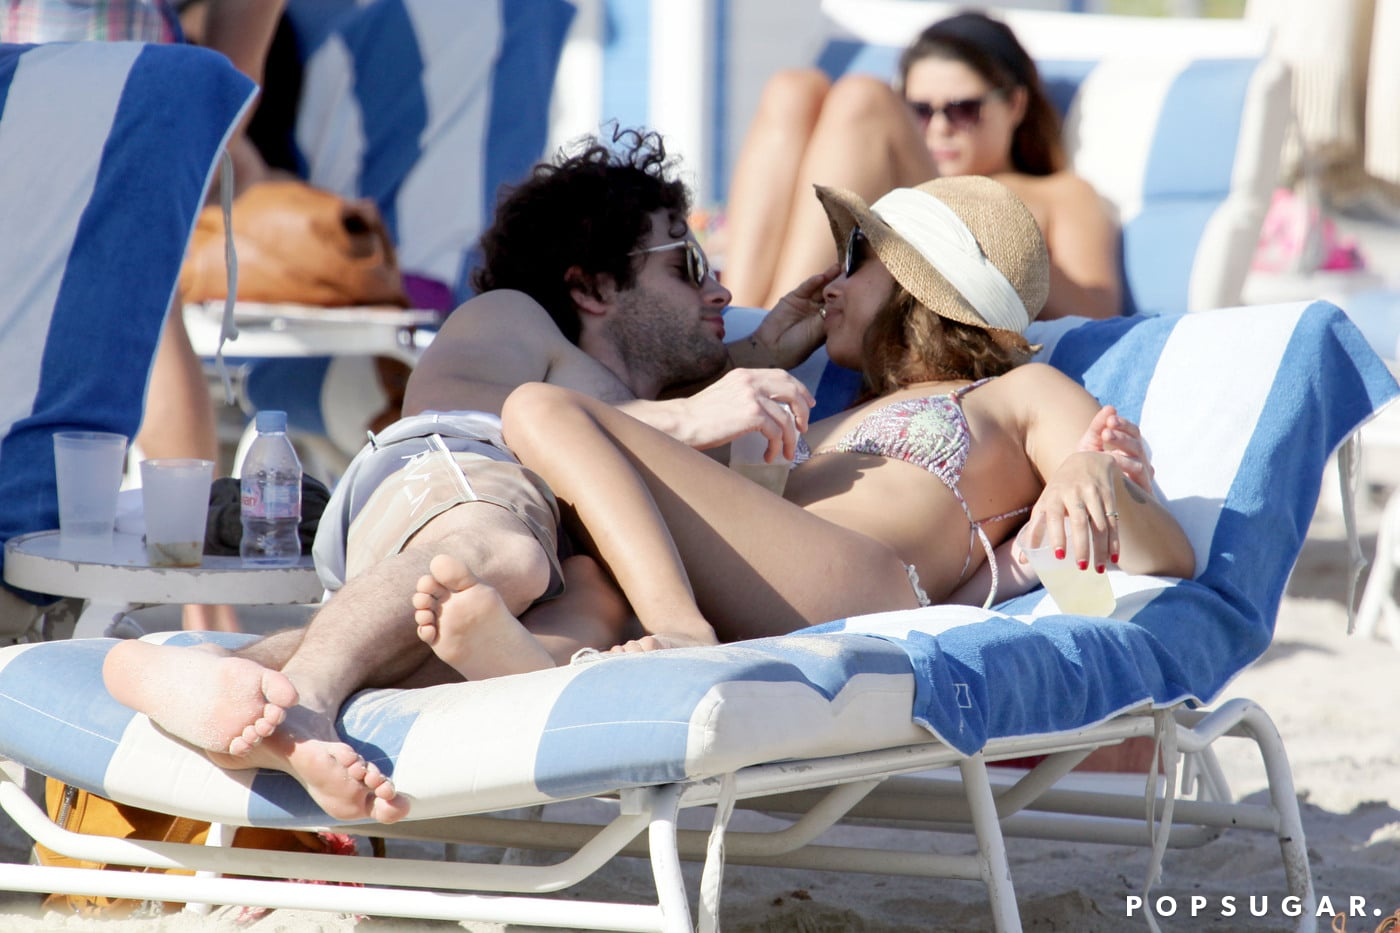 Bikini-clad Zoe Kravitz cuddled with shirtless Penn Badgley in Miami during a vacation in December 2011.